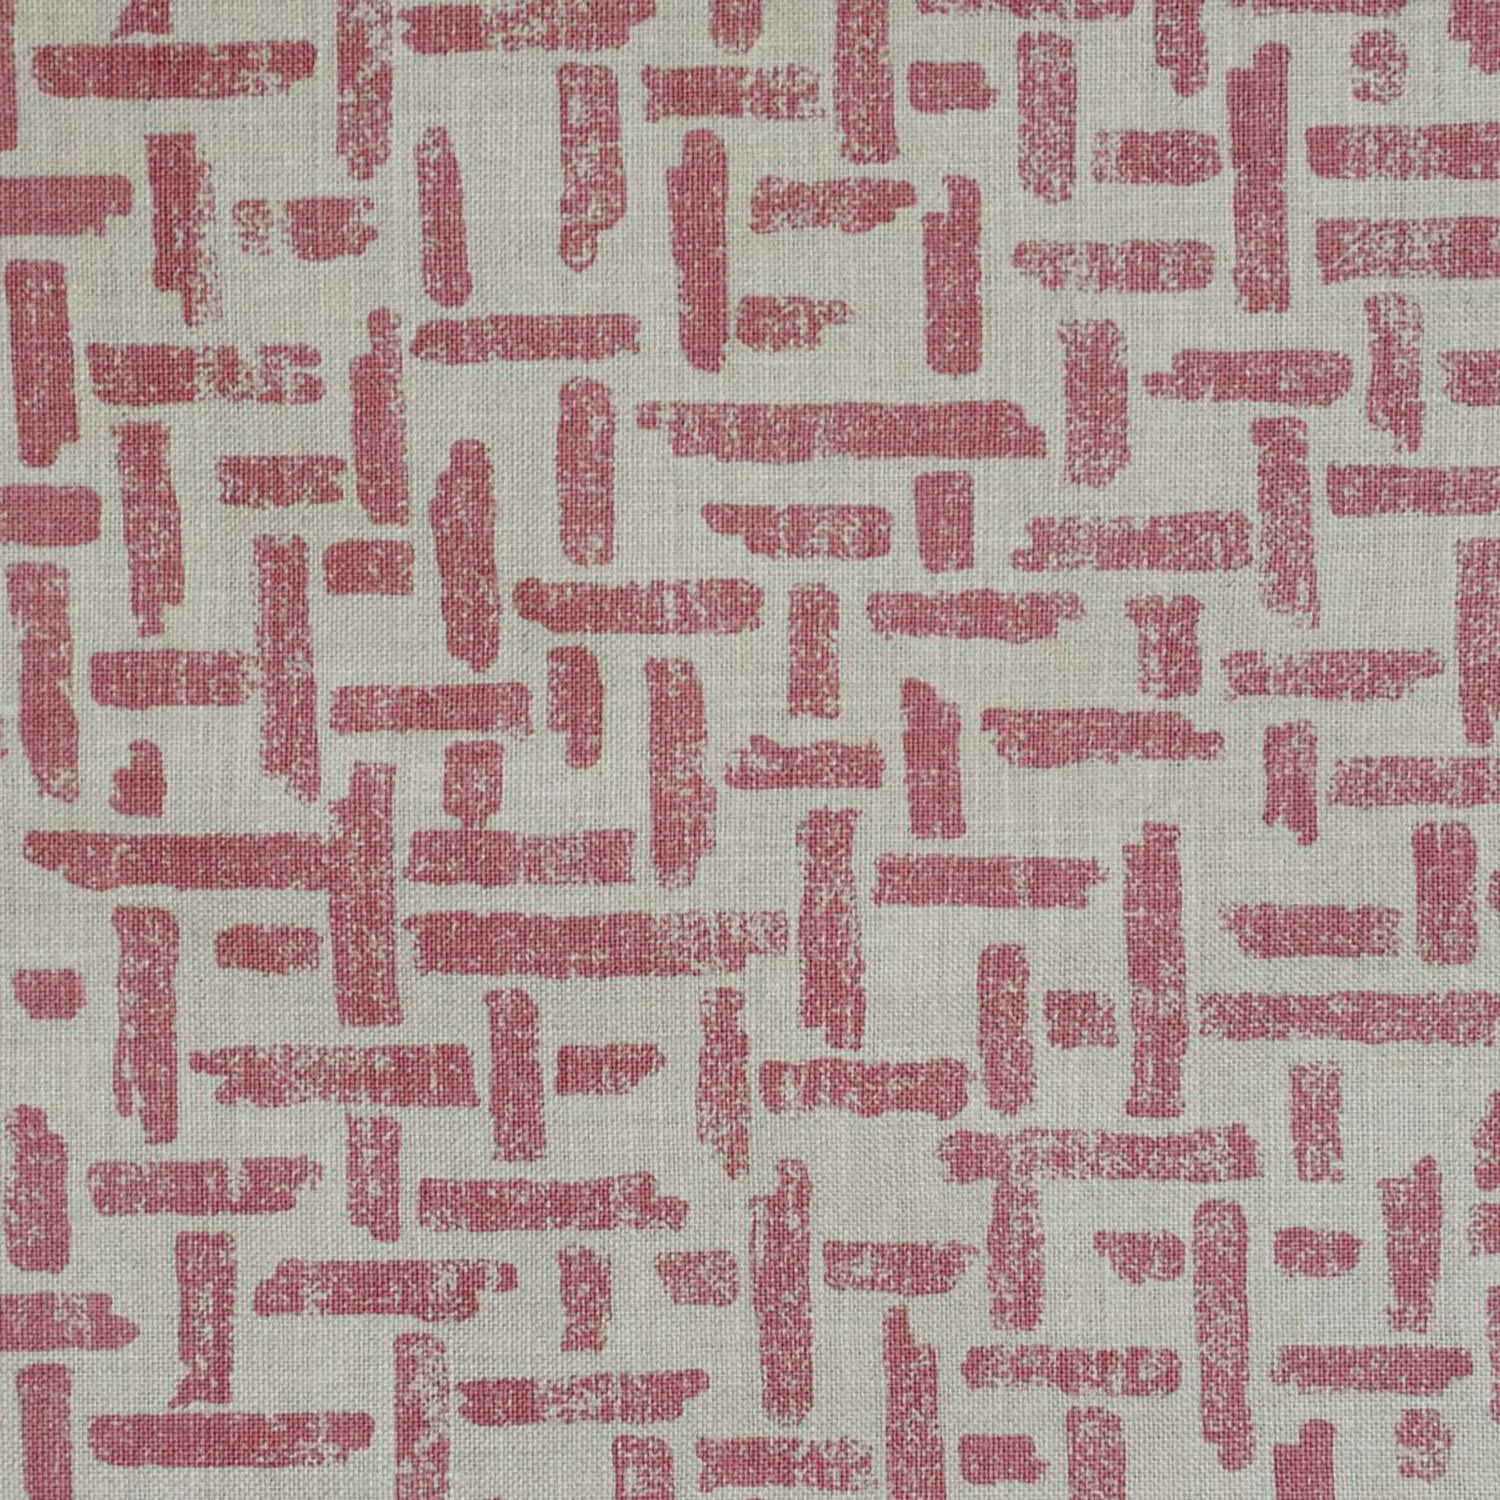 <p><strong>CRISS CROSS</strong>pink/natural 8200-04<a href=/collection-4/criss-cross-pink-natural-8200-04>More →</a></p>